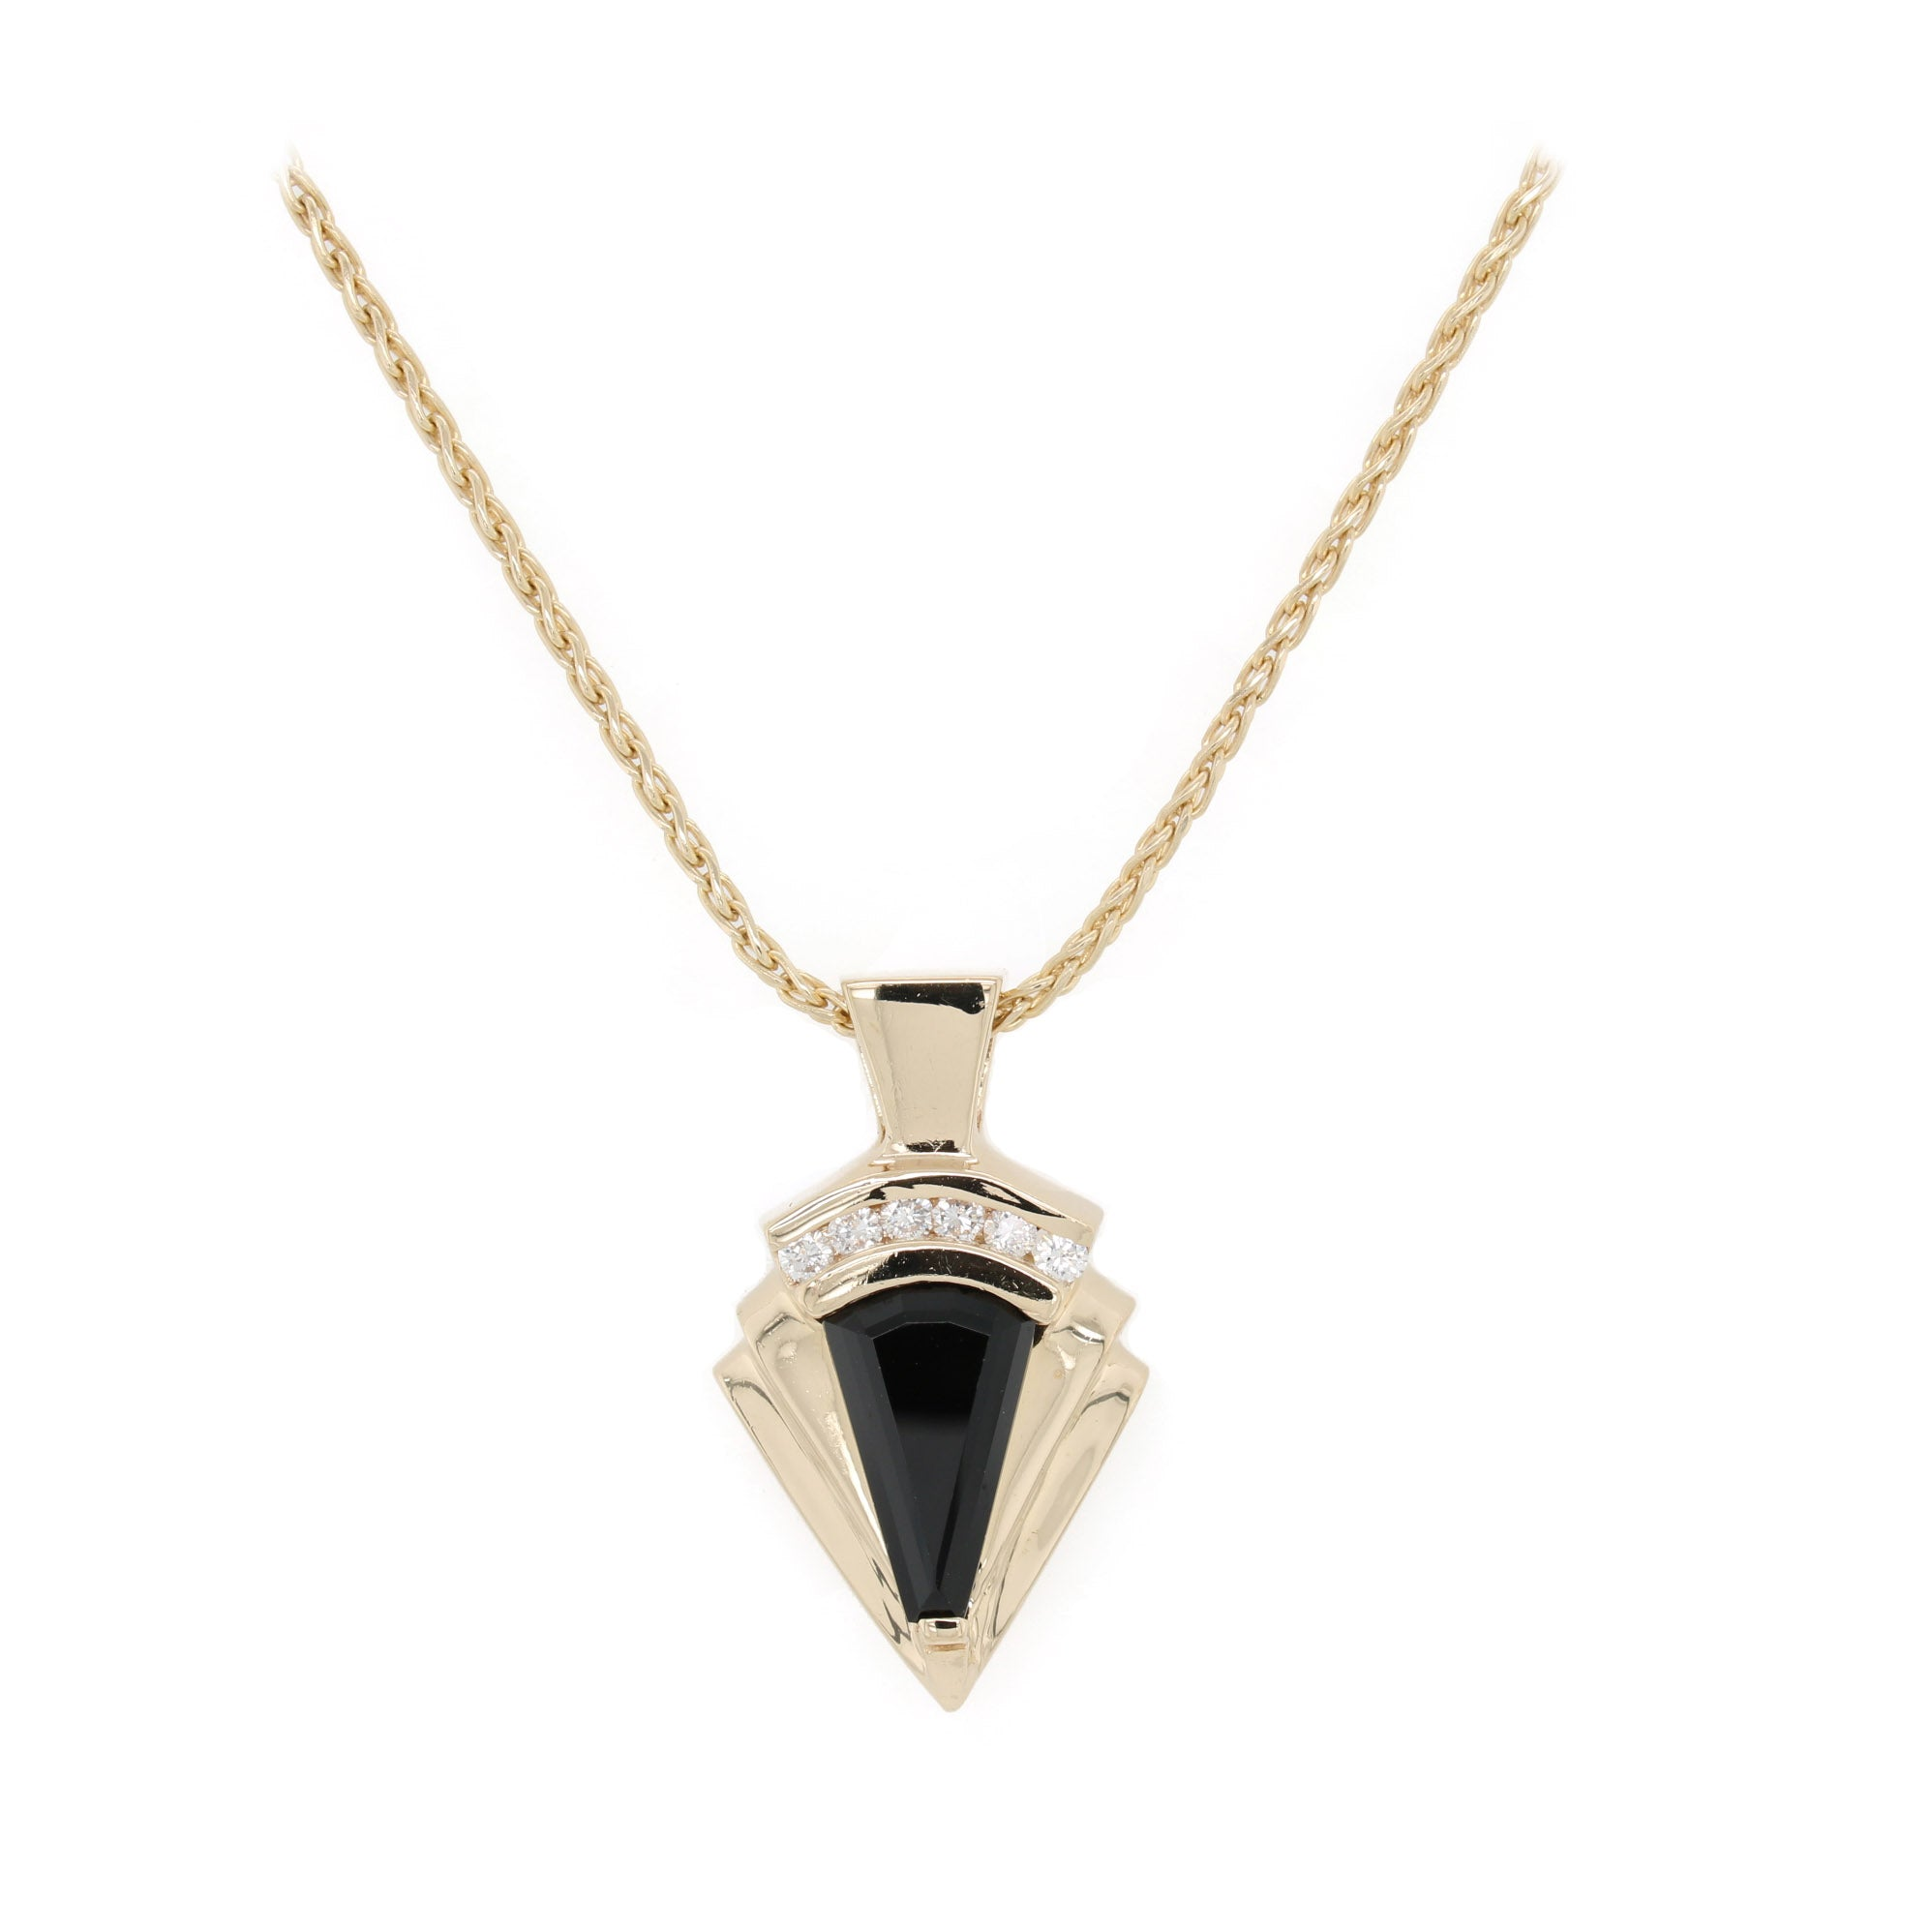 Black Onyx Art Deco Pendant Necklace